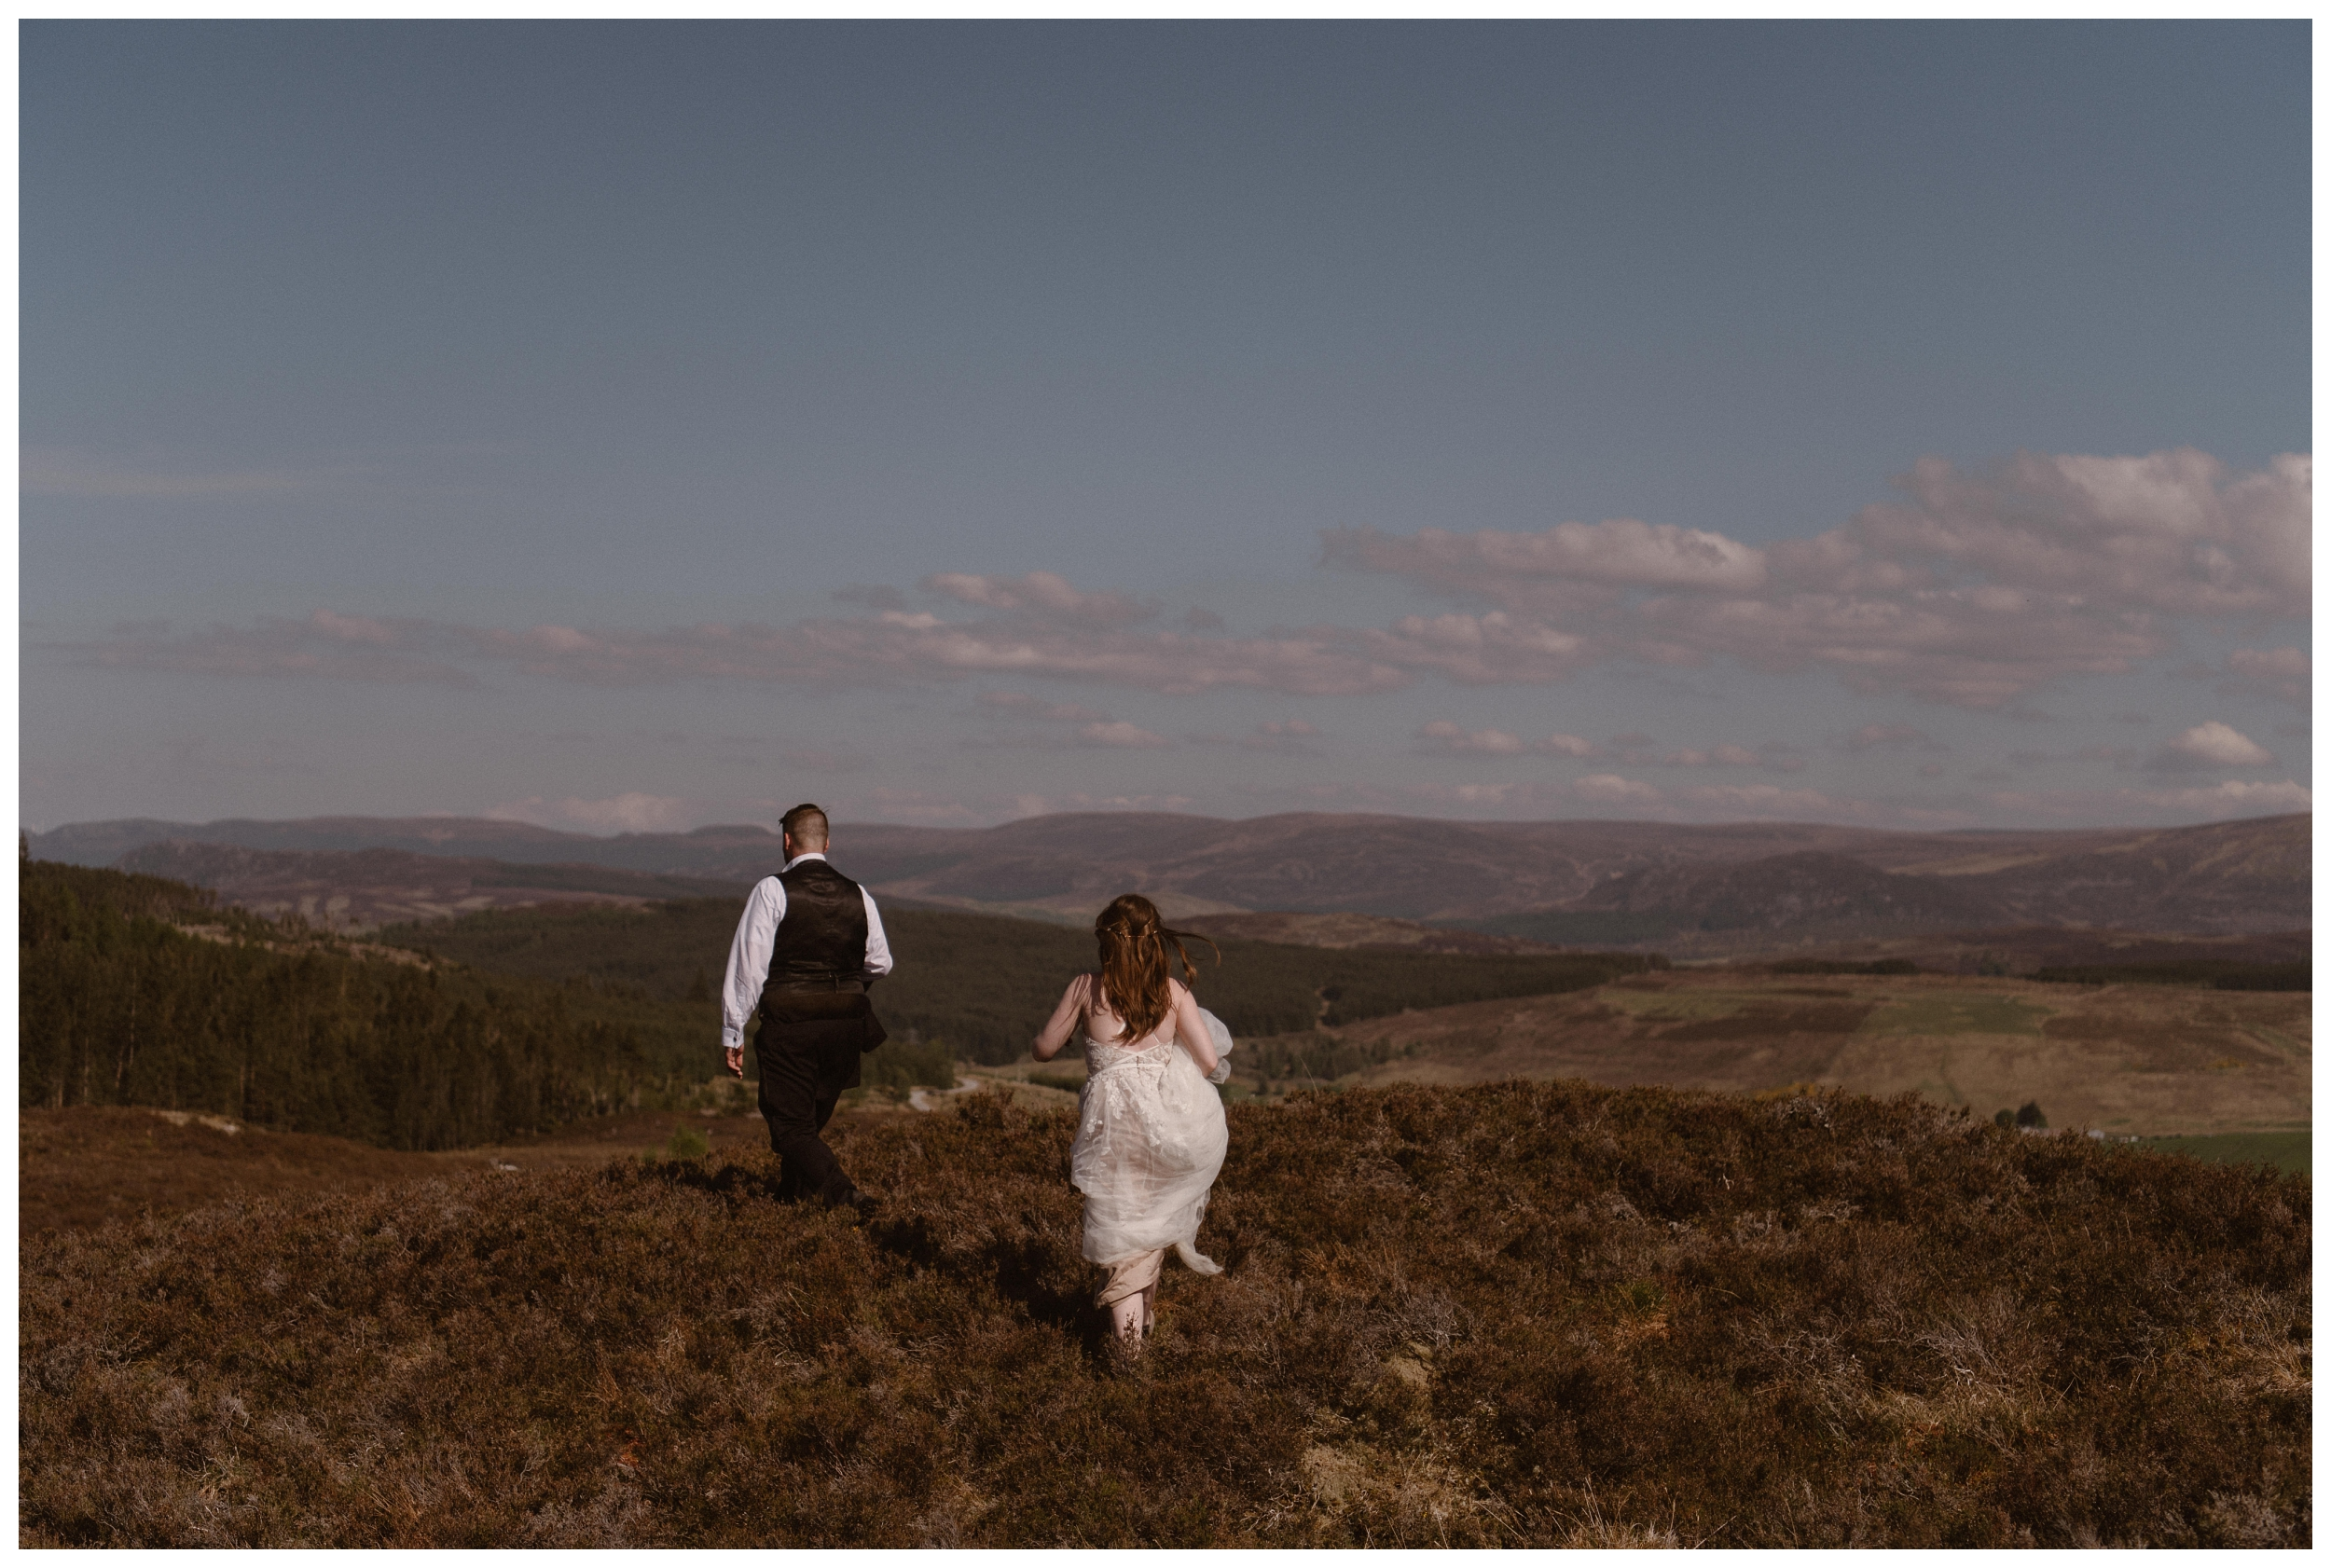 The rolling Scottish Highland hills before them, Elissa and Daniel explore together following their destination elopement. Photo by Maddie Mae, Adventure Instead.